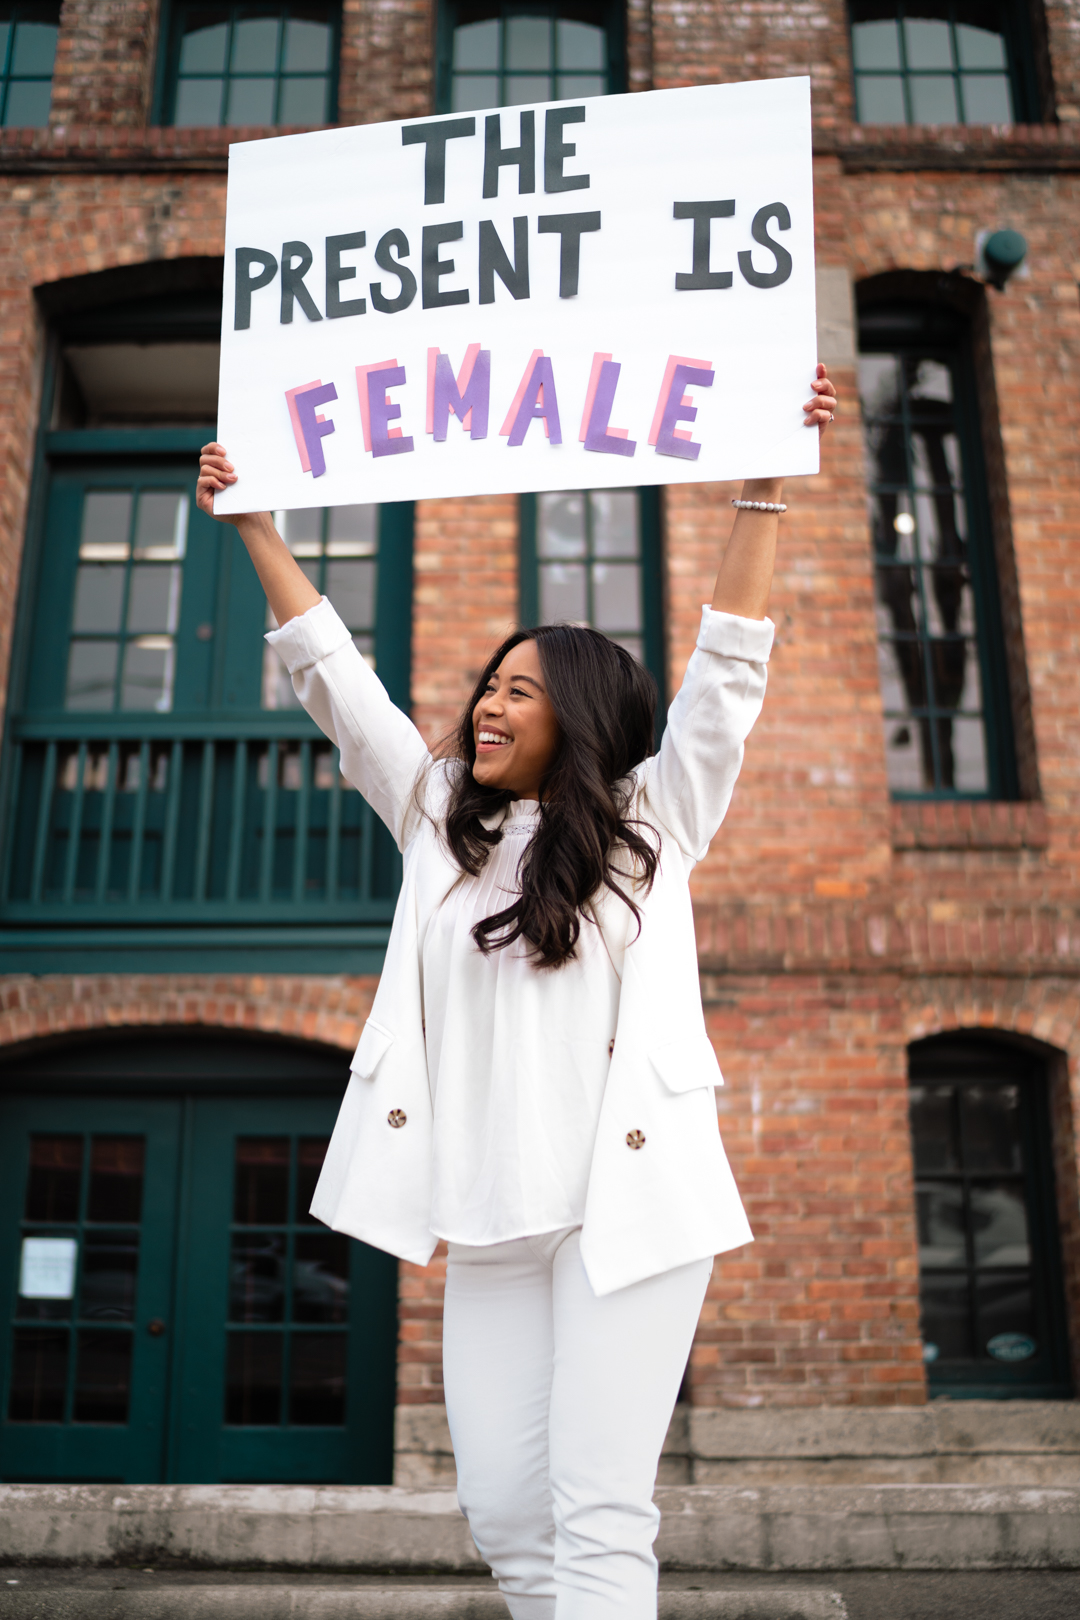 Inauguration Day 2021 - Kamala Harris inspired outfit - Women in White Suits - image from www.emmasedition.com - copyright @emmasedition